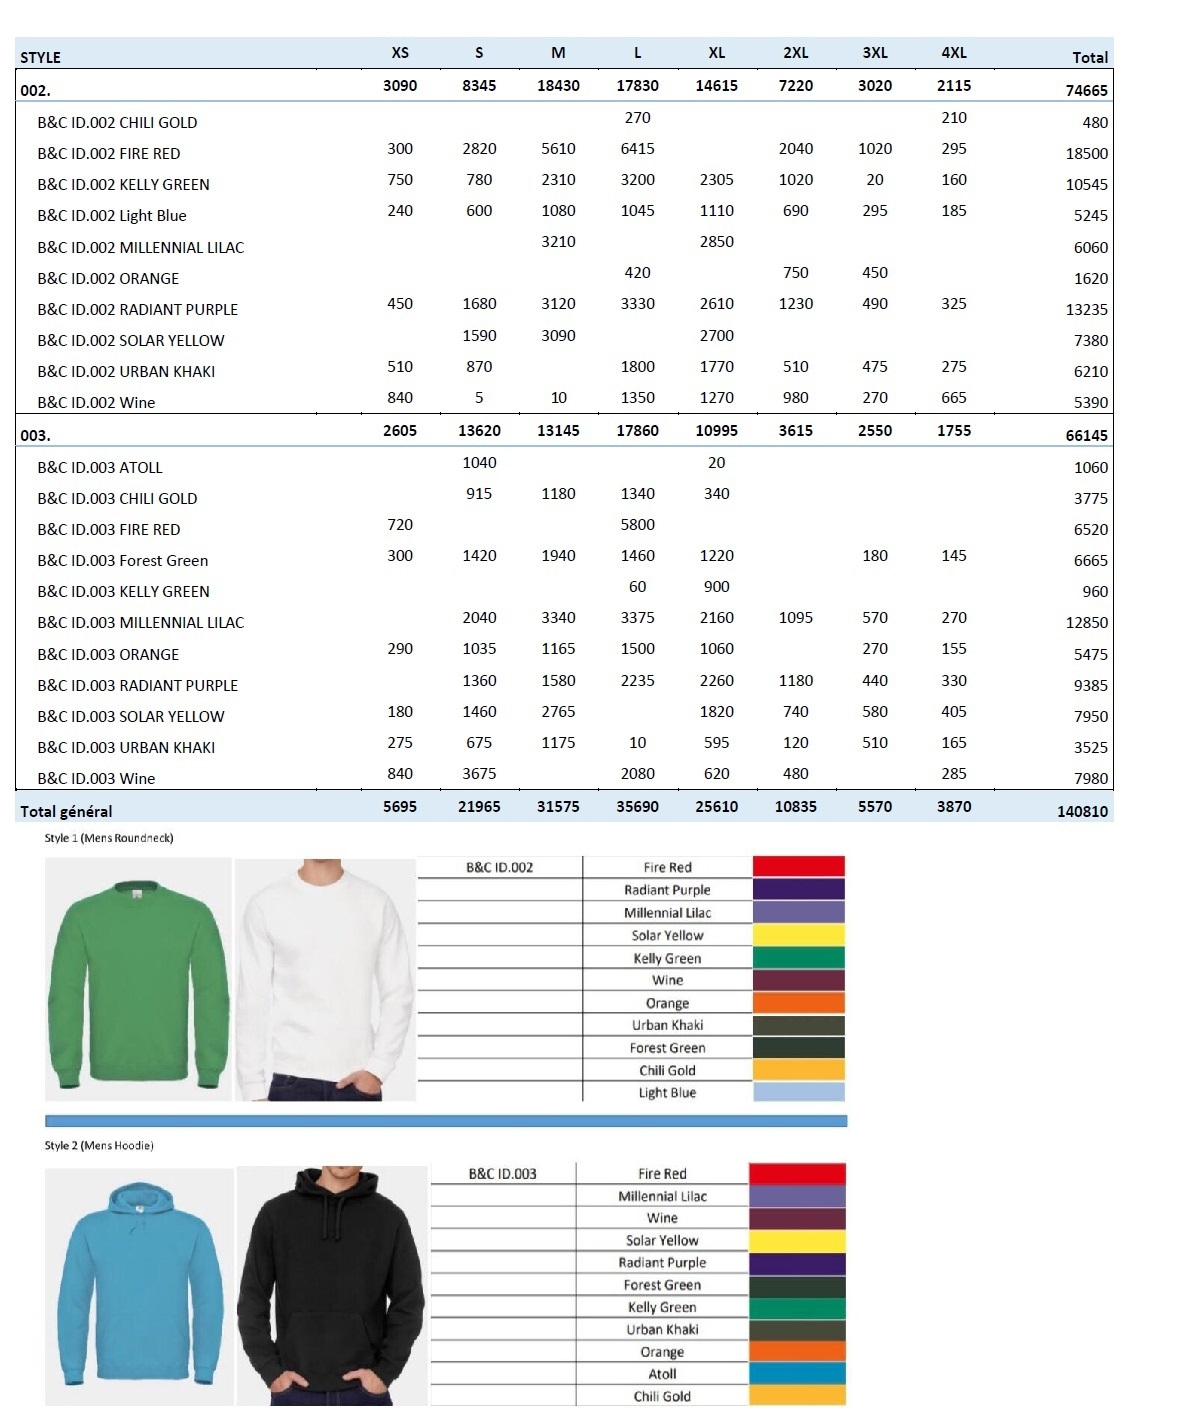 40071 - T-shirt+ B&C collection Sweatshirts in Europe